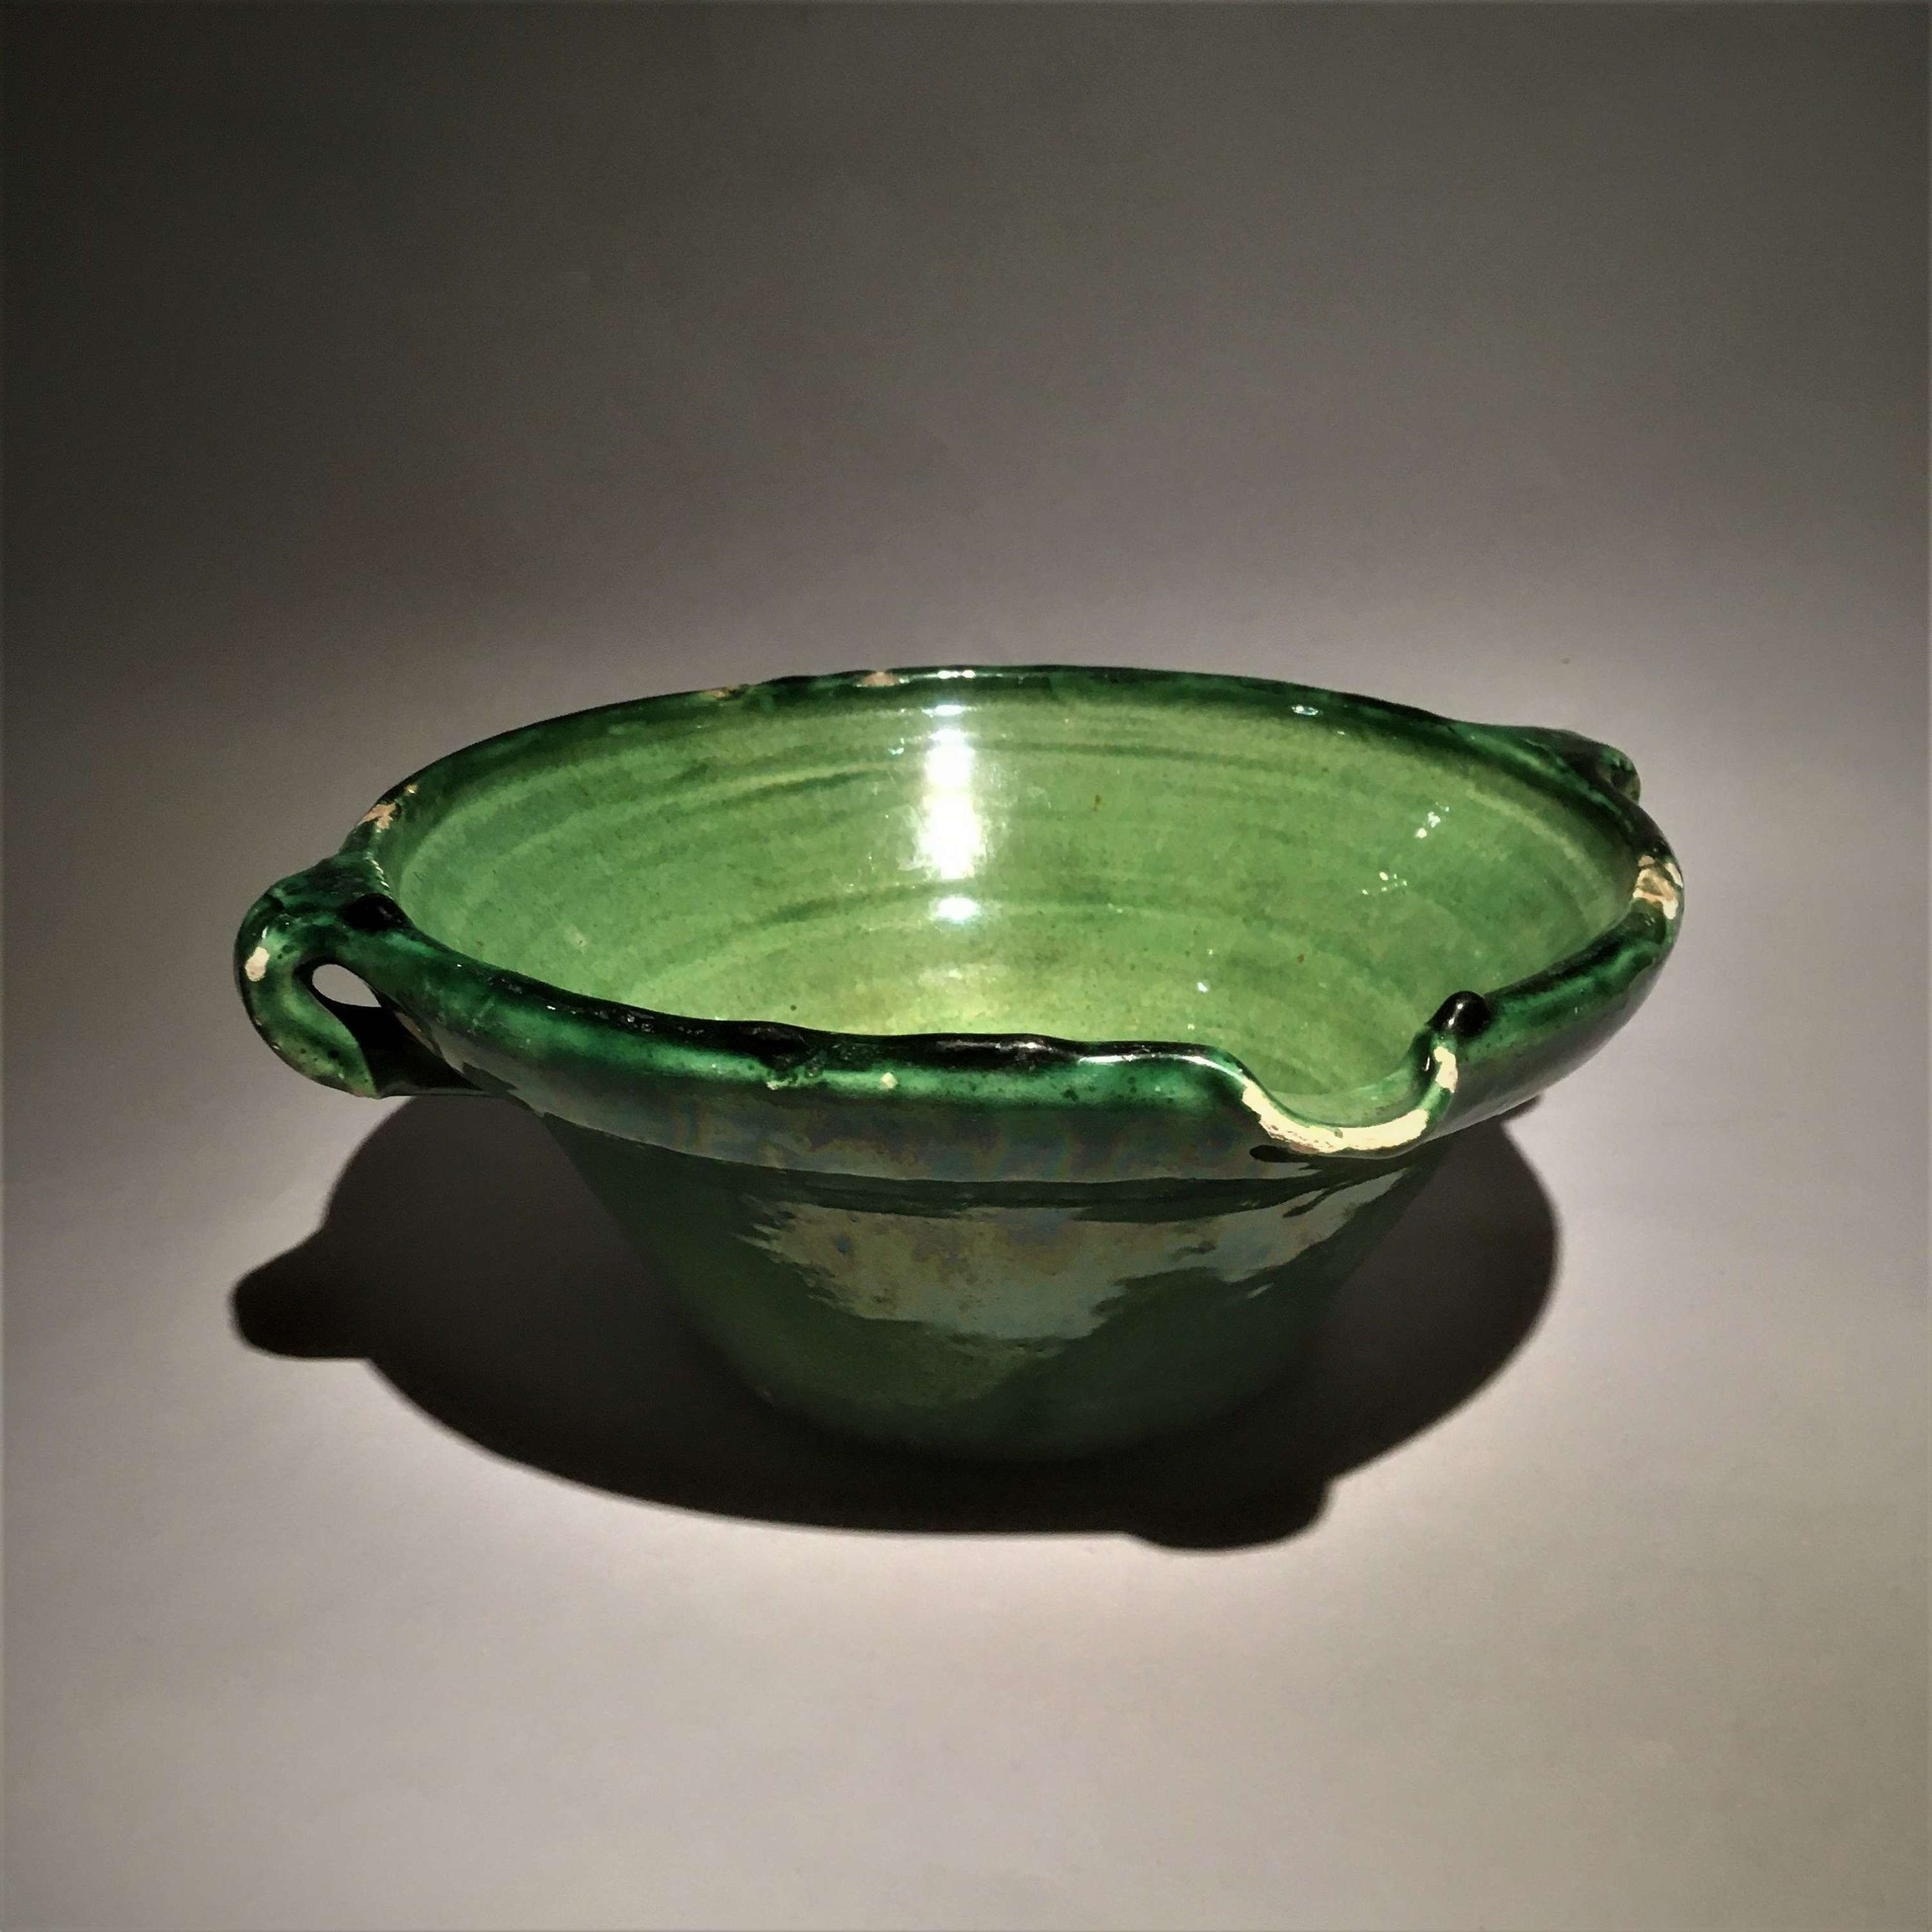 A French green glazed earthenware dairy bowl or 'tian'